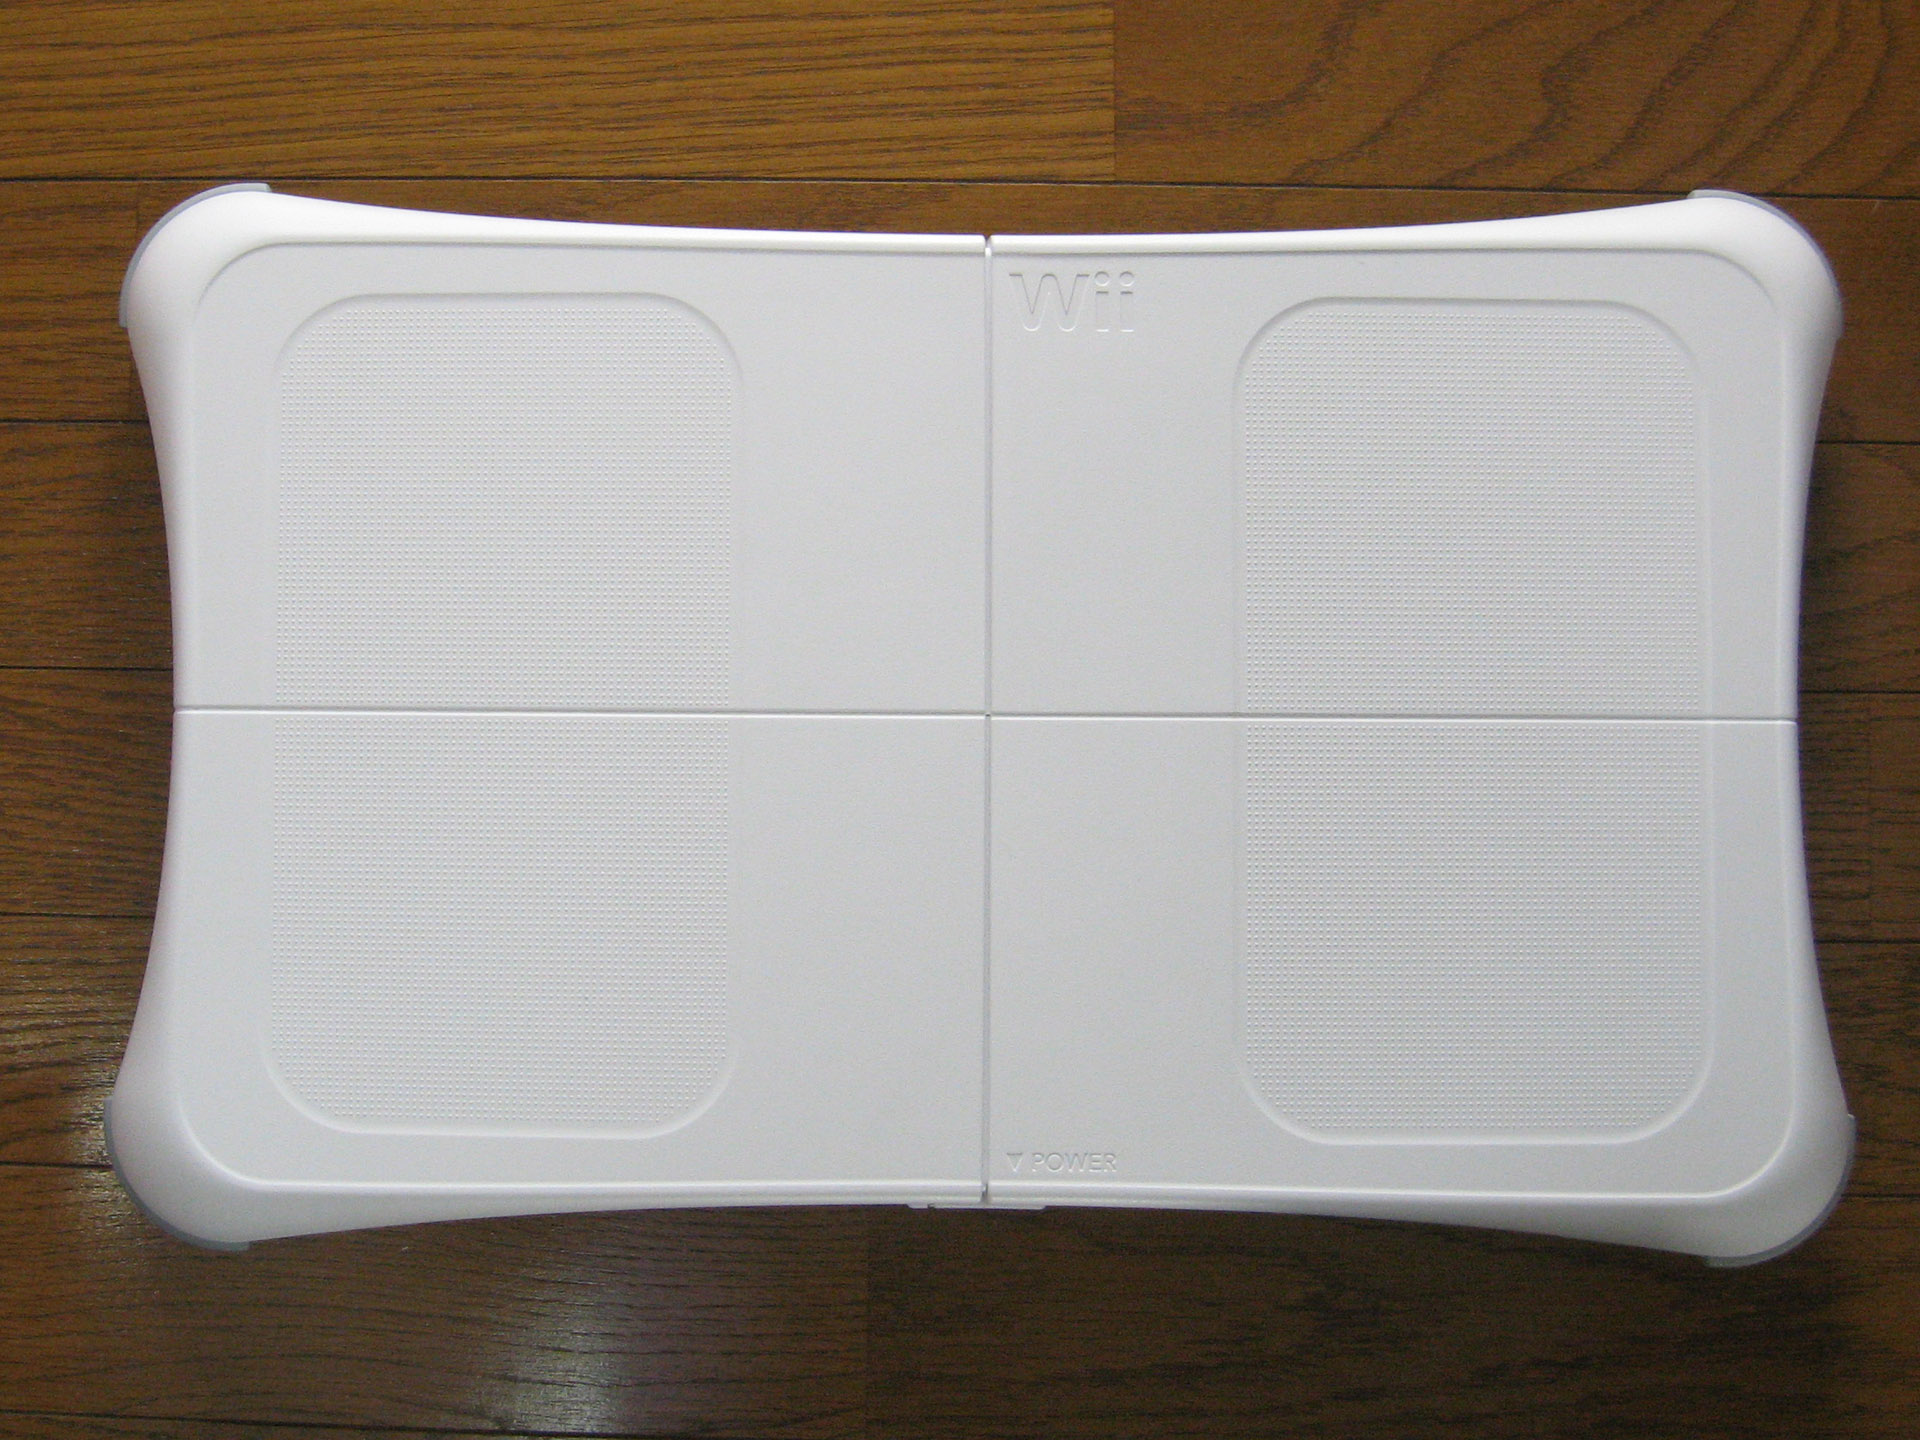 List of games that support Wii Balance Board